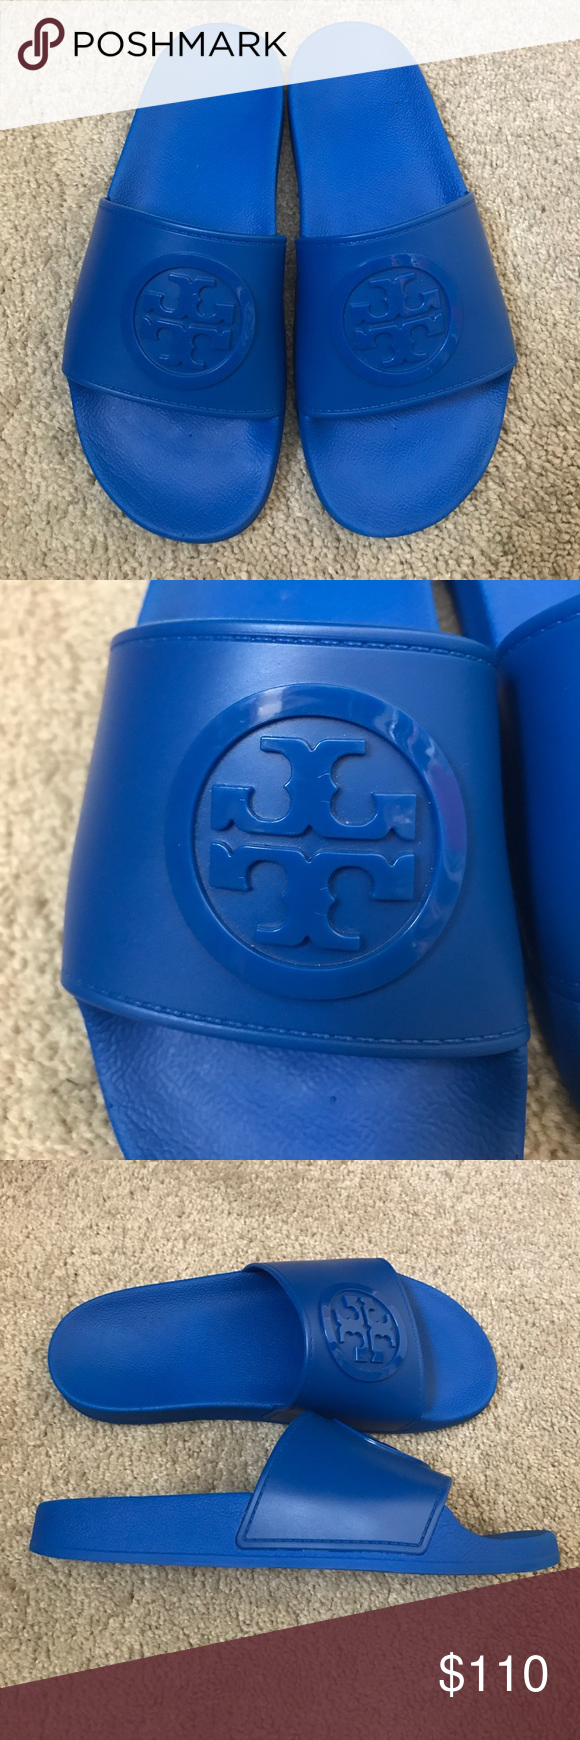 Tory Burch Anatomic Flat Slides sz 7 **These are new without tags and box. The bottom has a slight sticky residue from the price tag**  Casual rubber Tory Burch sandals with a signature logo detail. Textured insole and platform. Rubber sole.  Platform: 0.75in Tory Burch Shoes Sandals